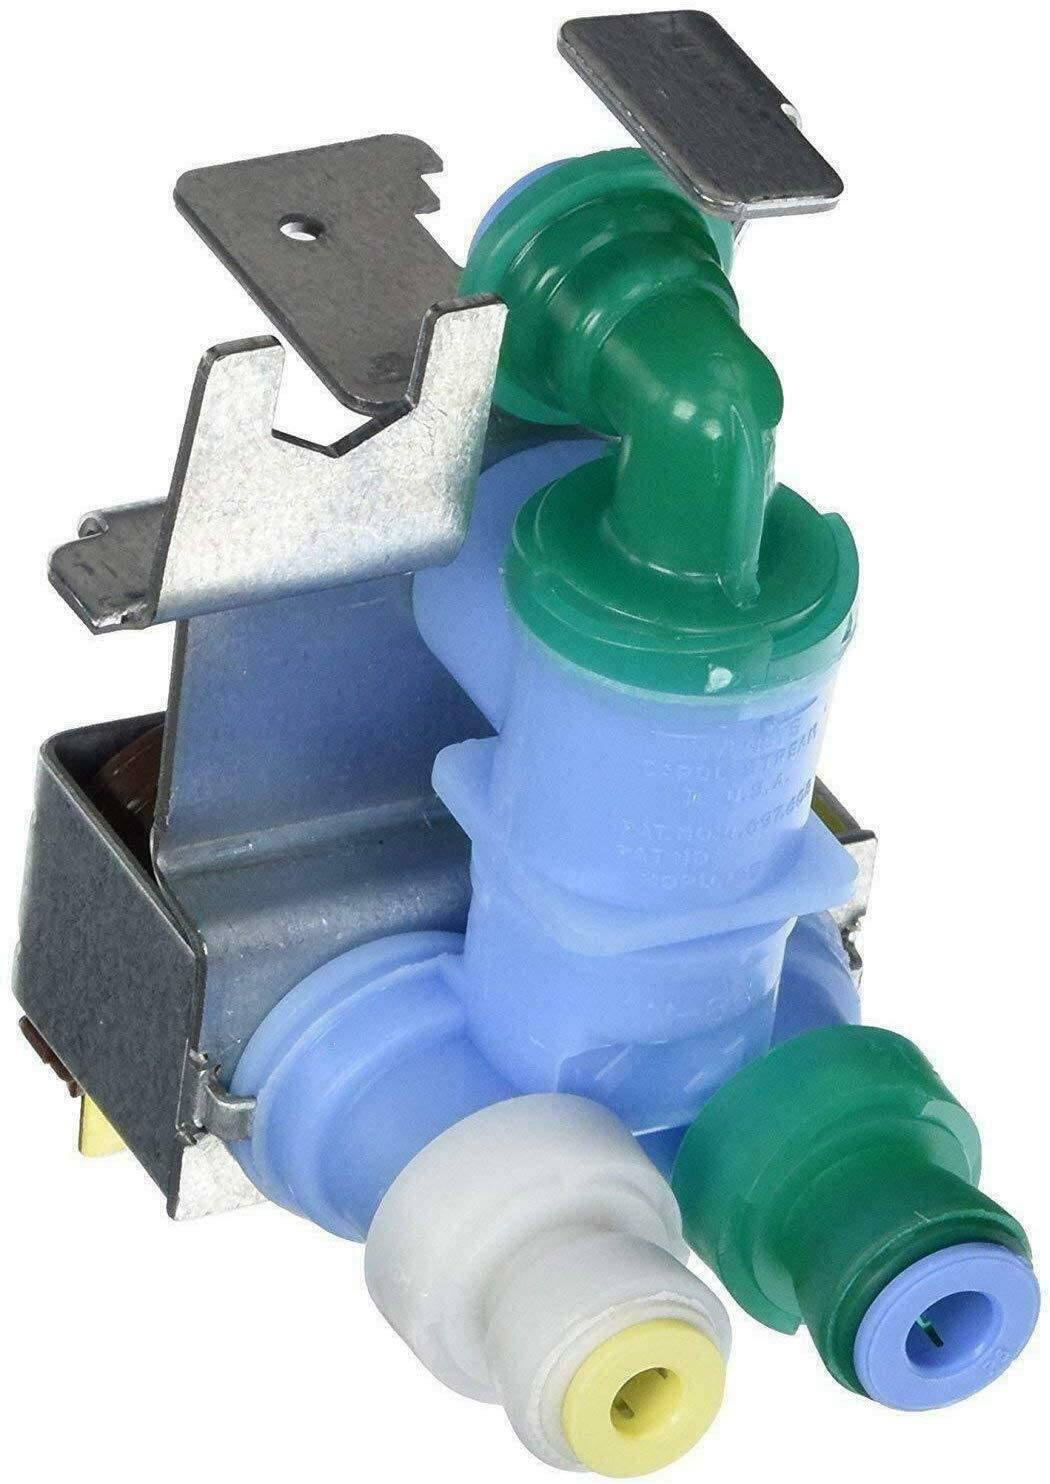 NEW 67006531 Compatible Dual Water Inlet valve for WHIRLPOOL Washer WP67006531, 12544118, PS11743697, AP6010515 made by OEM Manufacturer - 1 YEAR WARRANTY